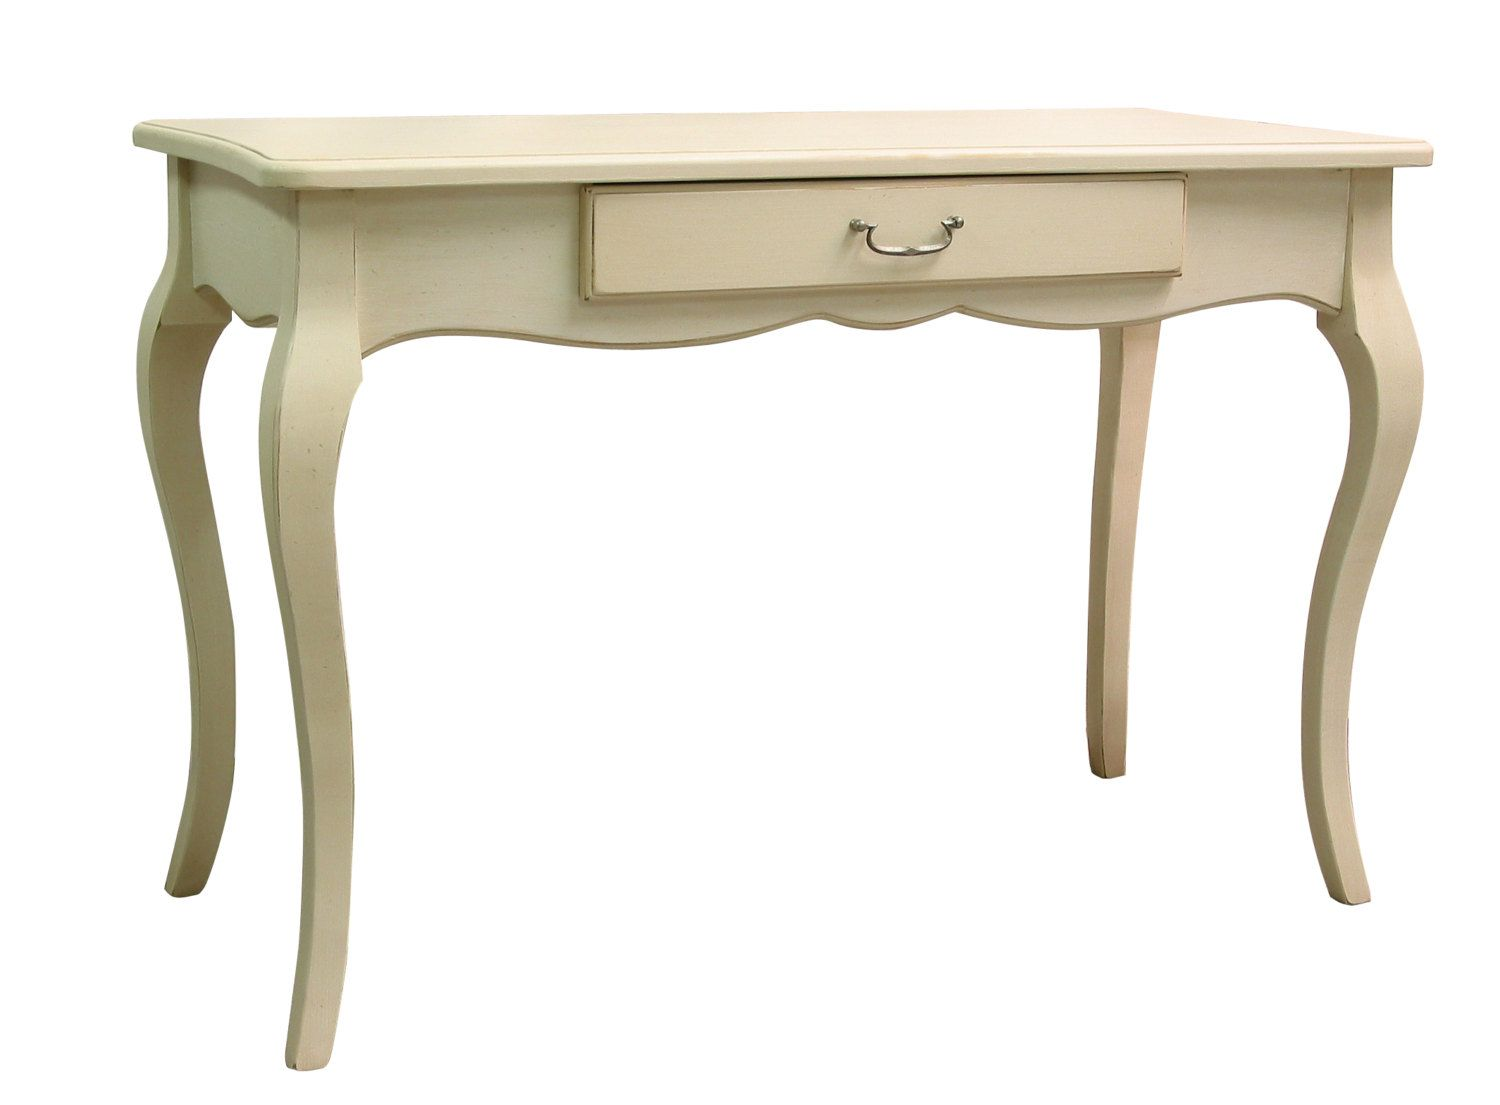 Louis French Writing Desk With 3 Drawers White Painted French Furniture Writing Desks Lad French Style Desk French Style Writing Desk French Writing Desk